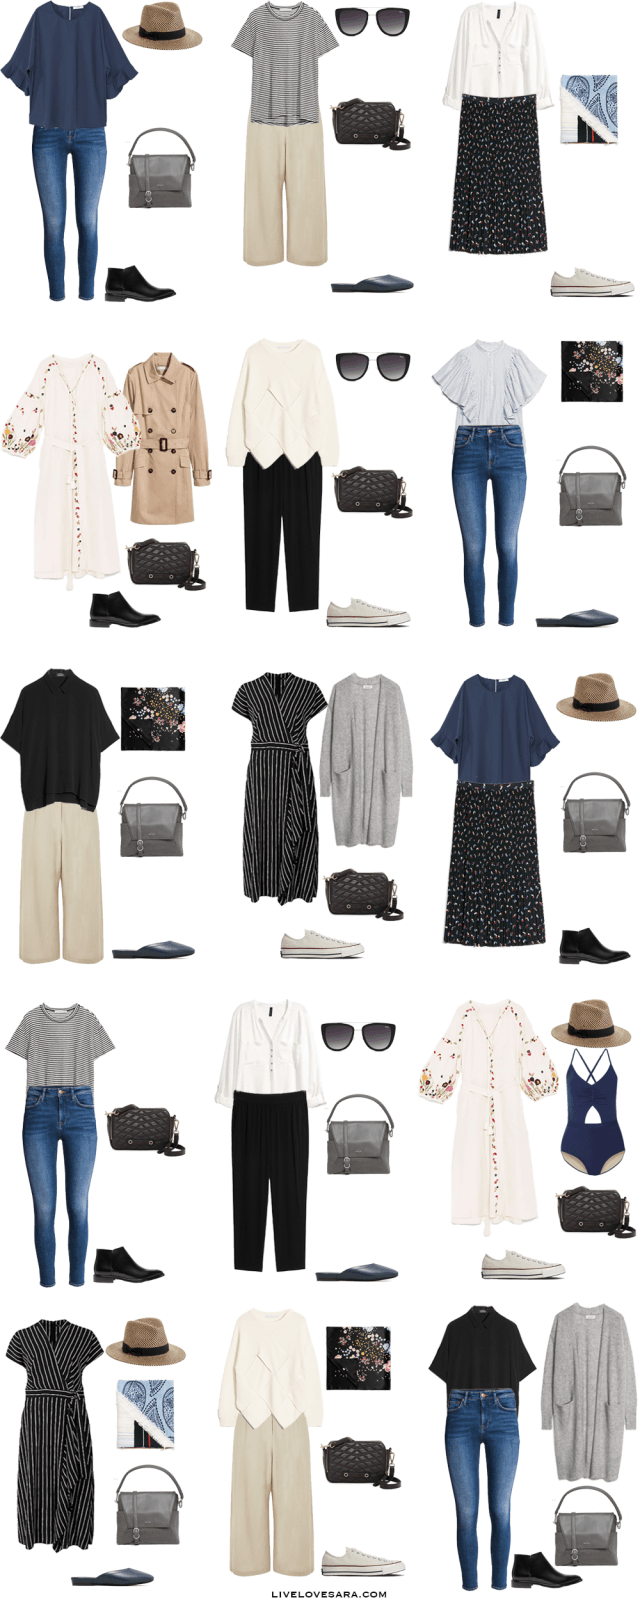 Awesome What To Wear For One Month In Europe Packing Light List Outfit Options  16 30 #packinglist #packinglight #travellight #travel #livelovesara Amazing Pictures